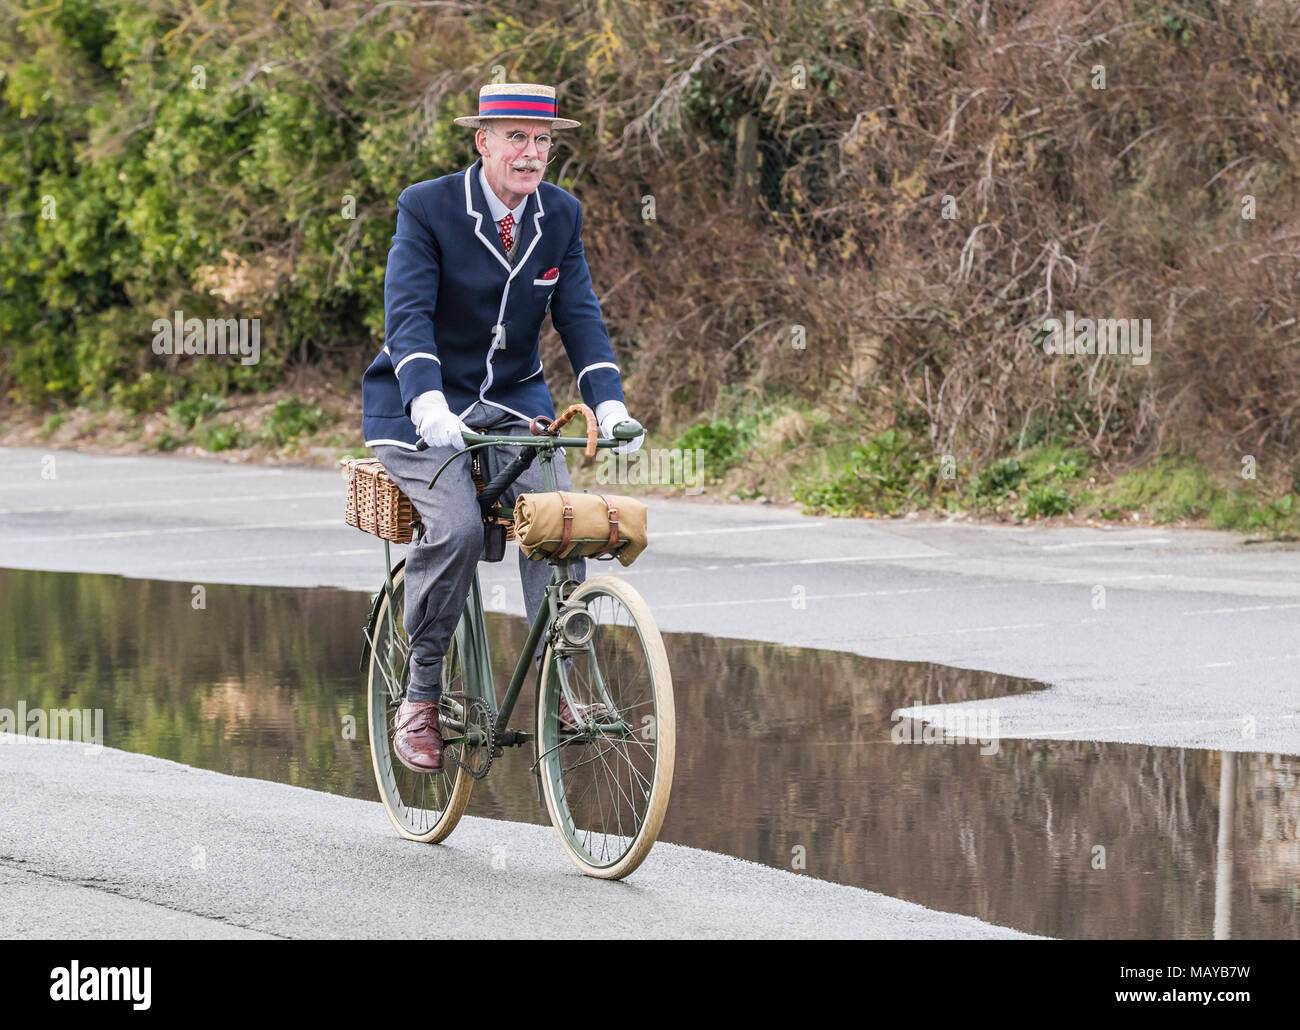 Elderly man cycling on a Victorian bicycle dressed in period costume wearing a blazer and straw boater hat, in the UK. Cyclist riding vintage bike. - Stock Image